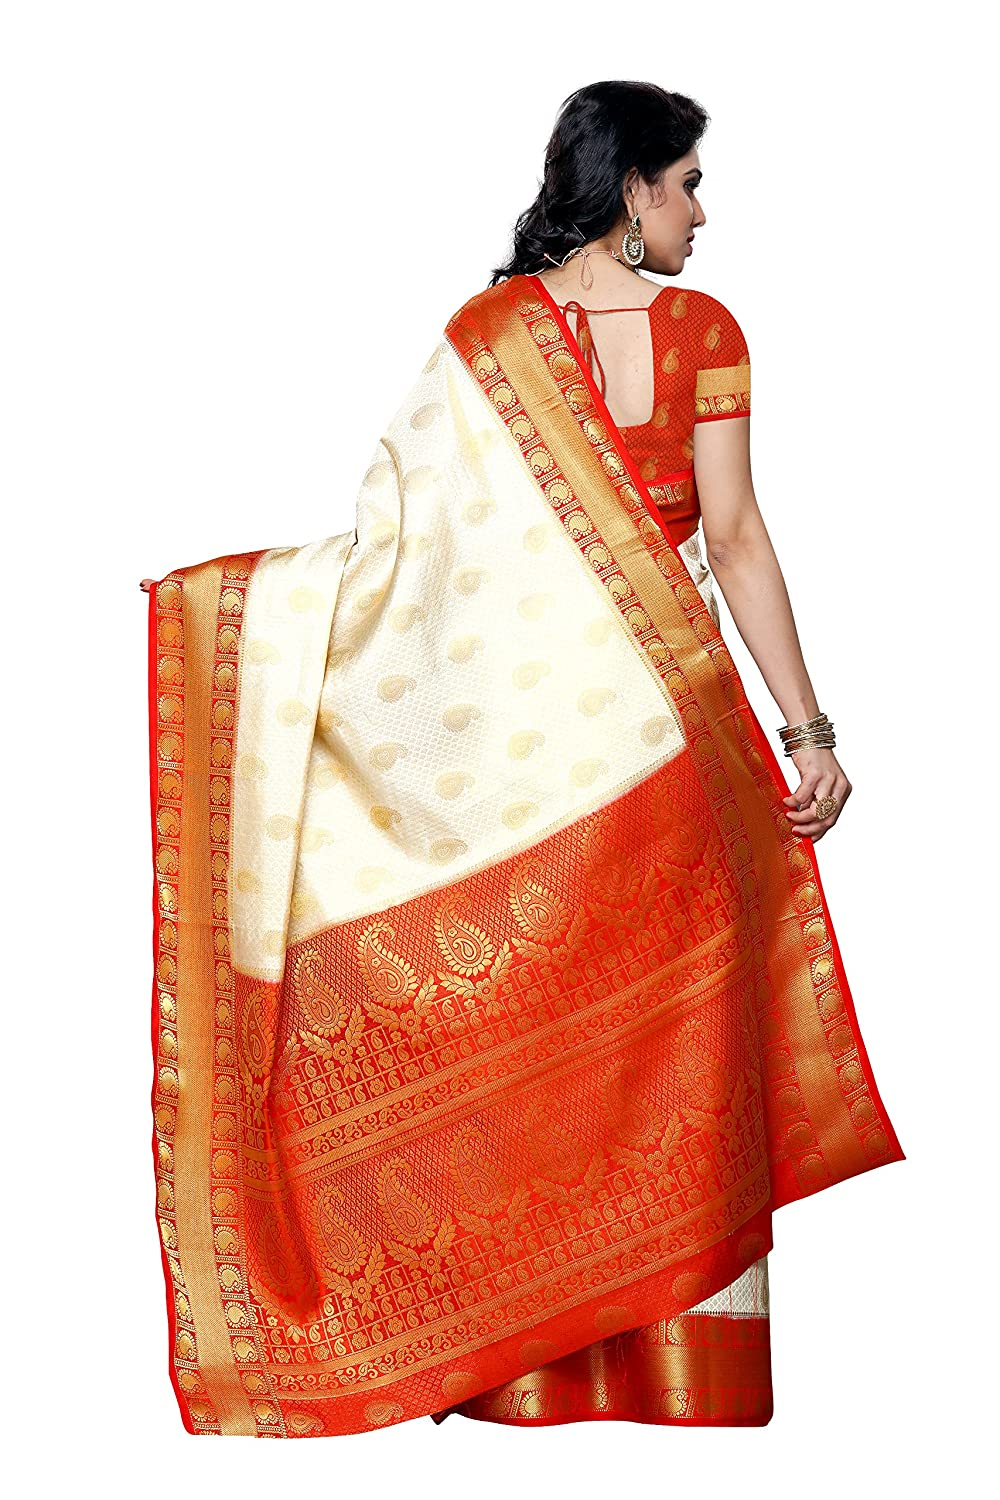 Mimosa womens silk saree 225 hwt redoff whitefree size amazon mimosa womens silk saree 225 hwt redoff whitefree size amazon clothing accessories fandeluxe